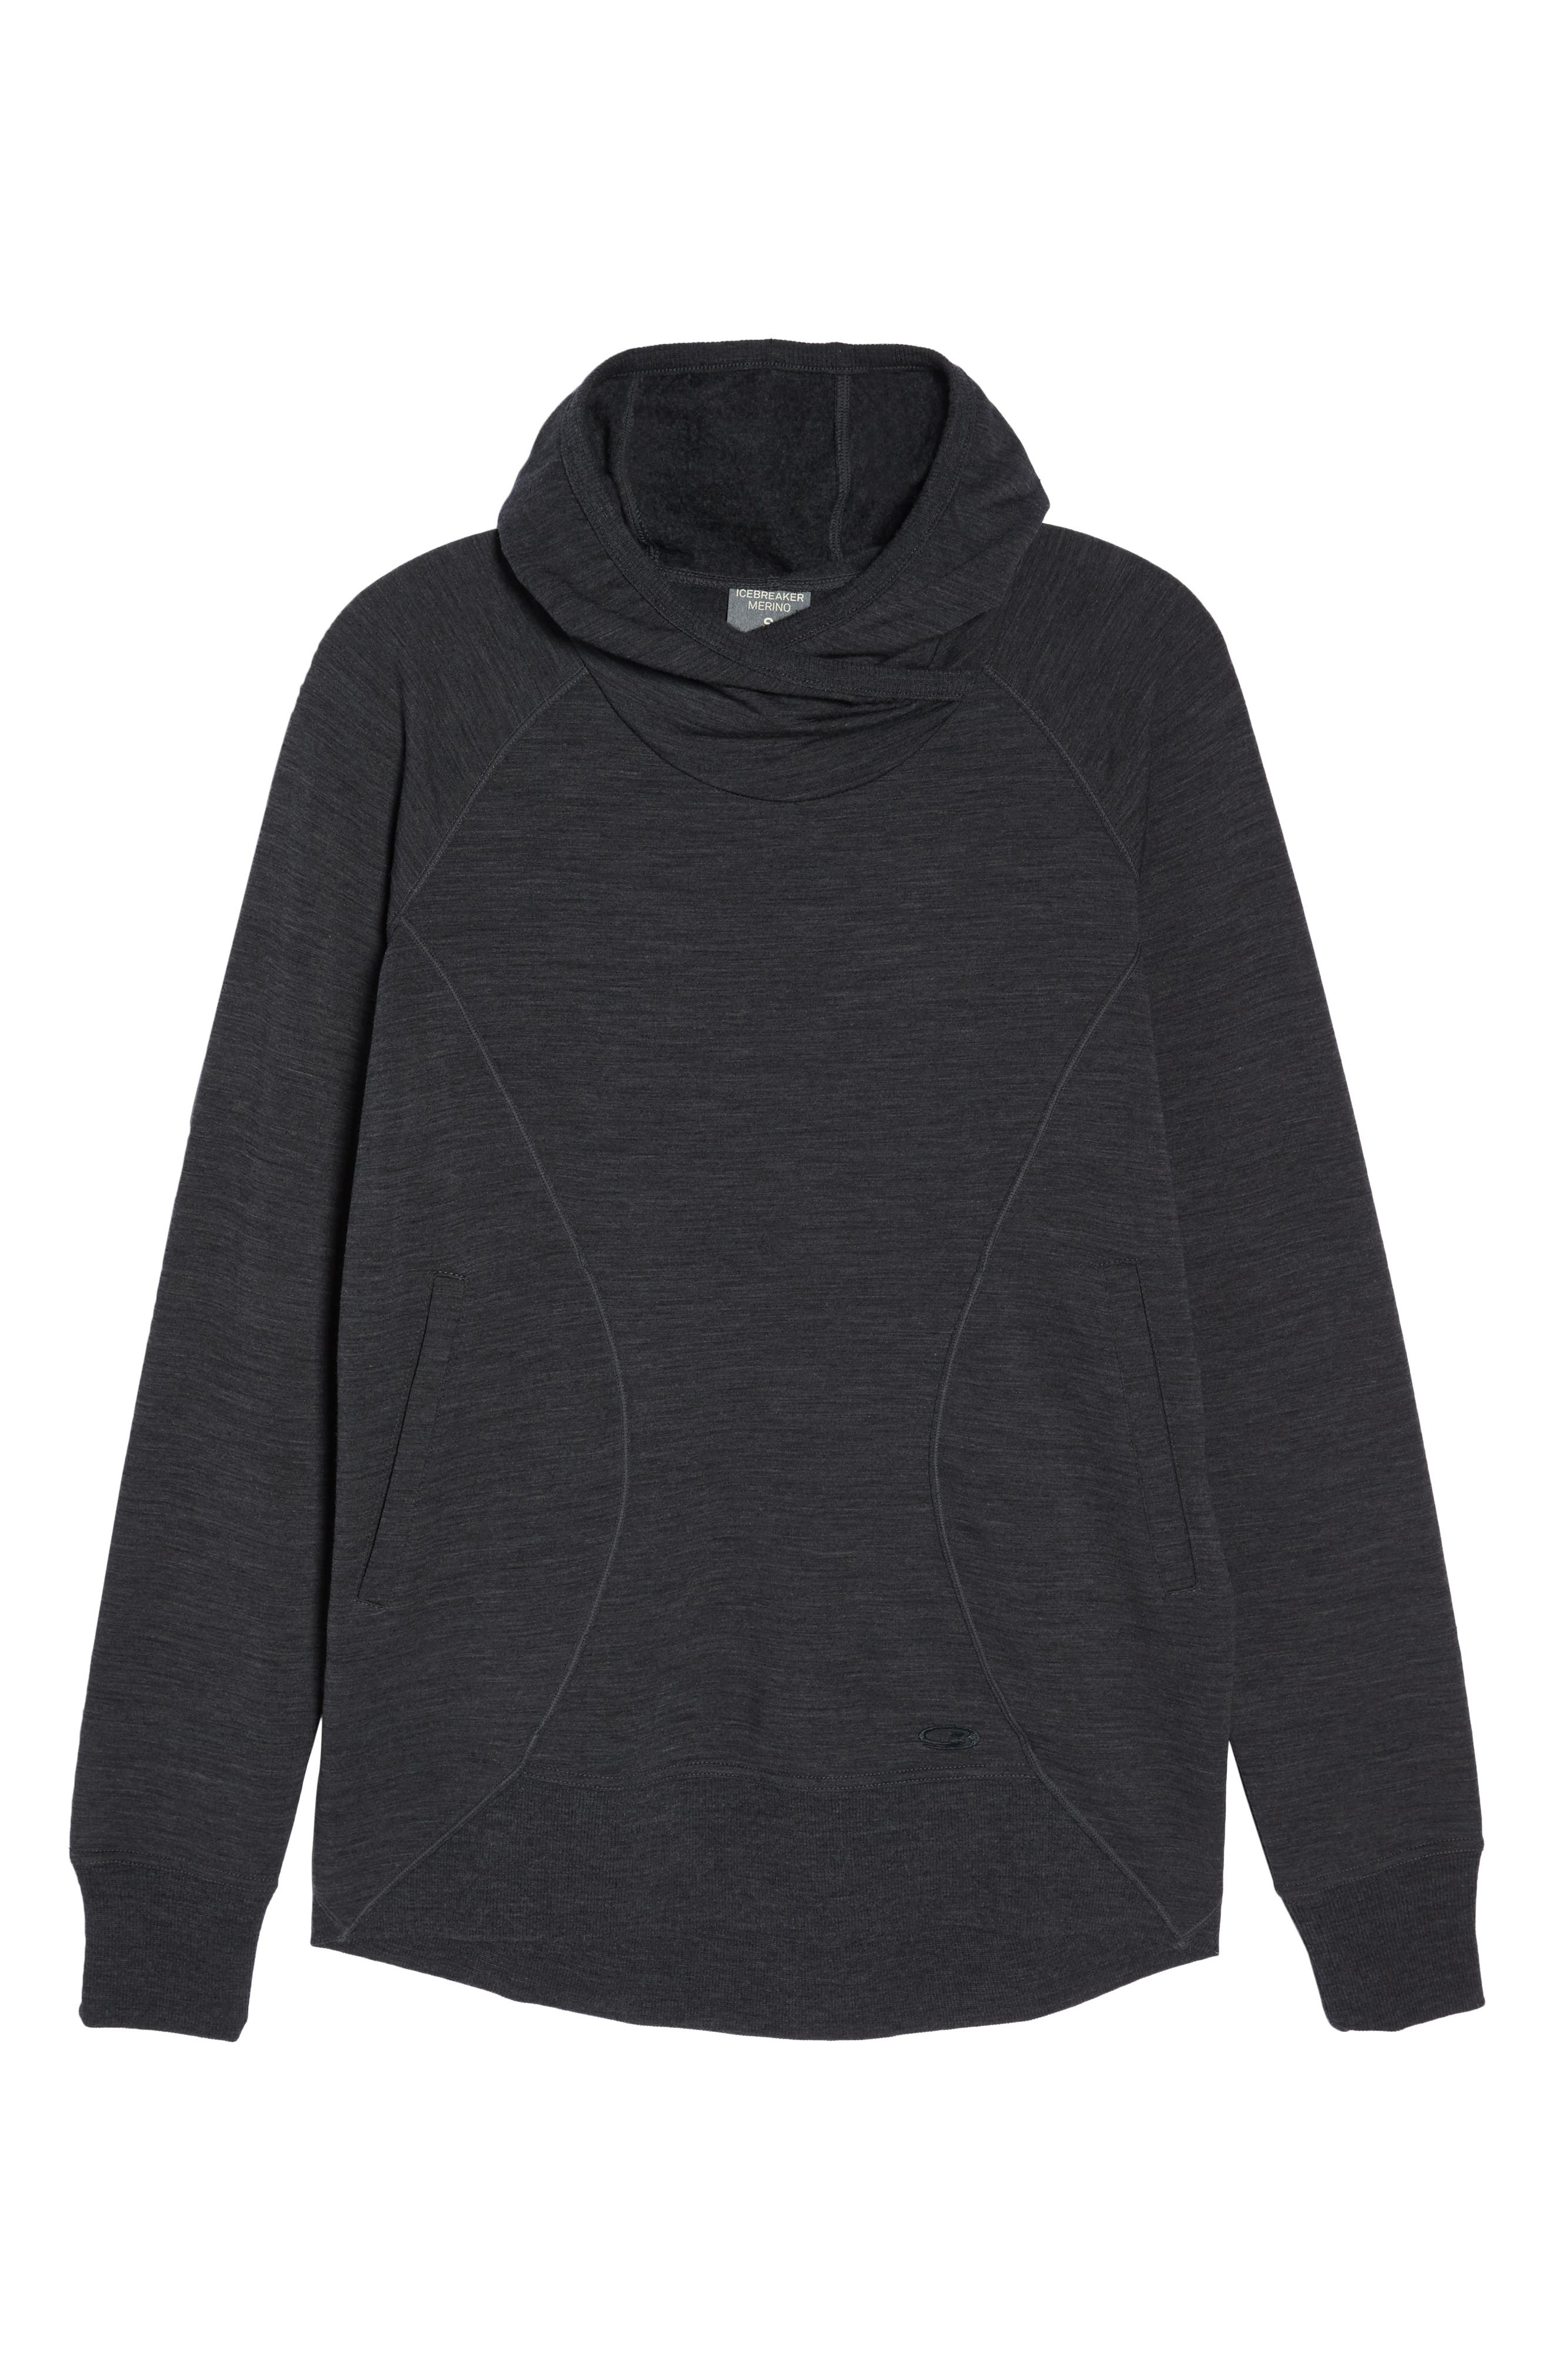 ICEBREAKER,                             Dia RealFLEECE<sup>®</sup> Pullover Hoodie,                             Alternate thumbnail 7, color,                             JET HEATHER